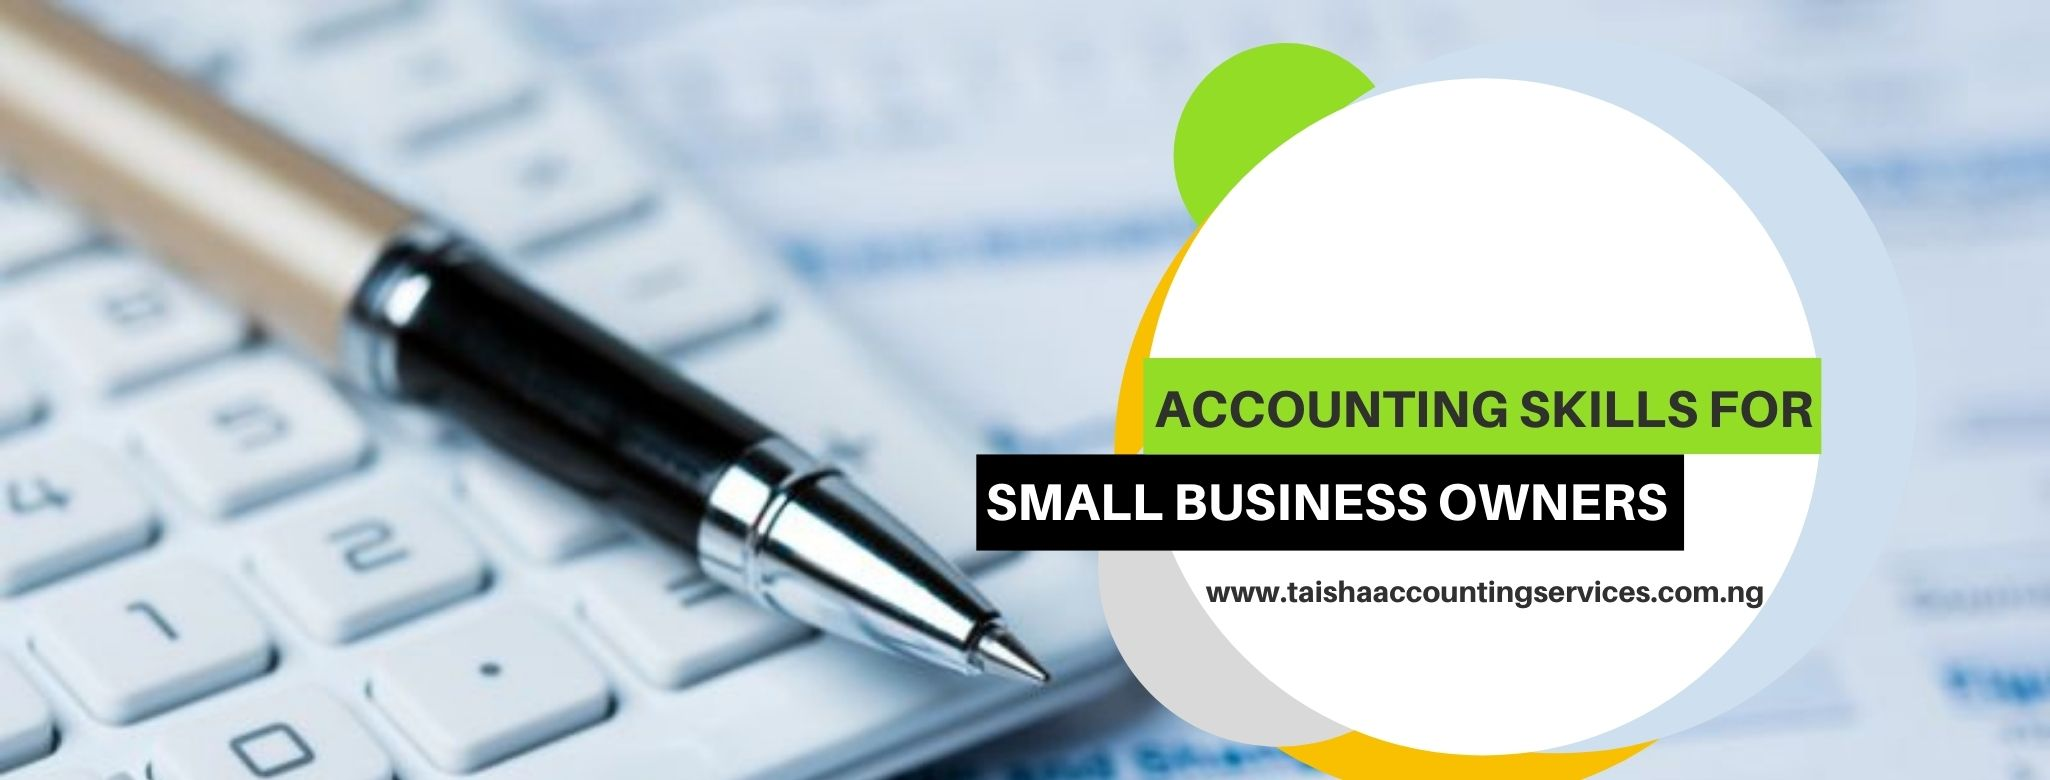 Accounting Skills for Small Business Owners